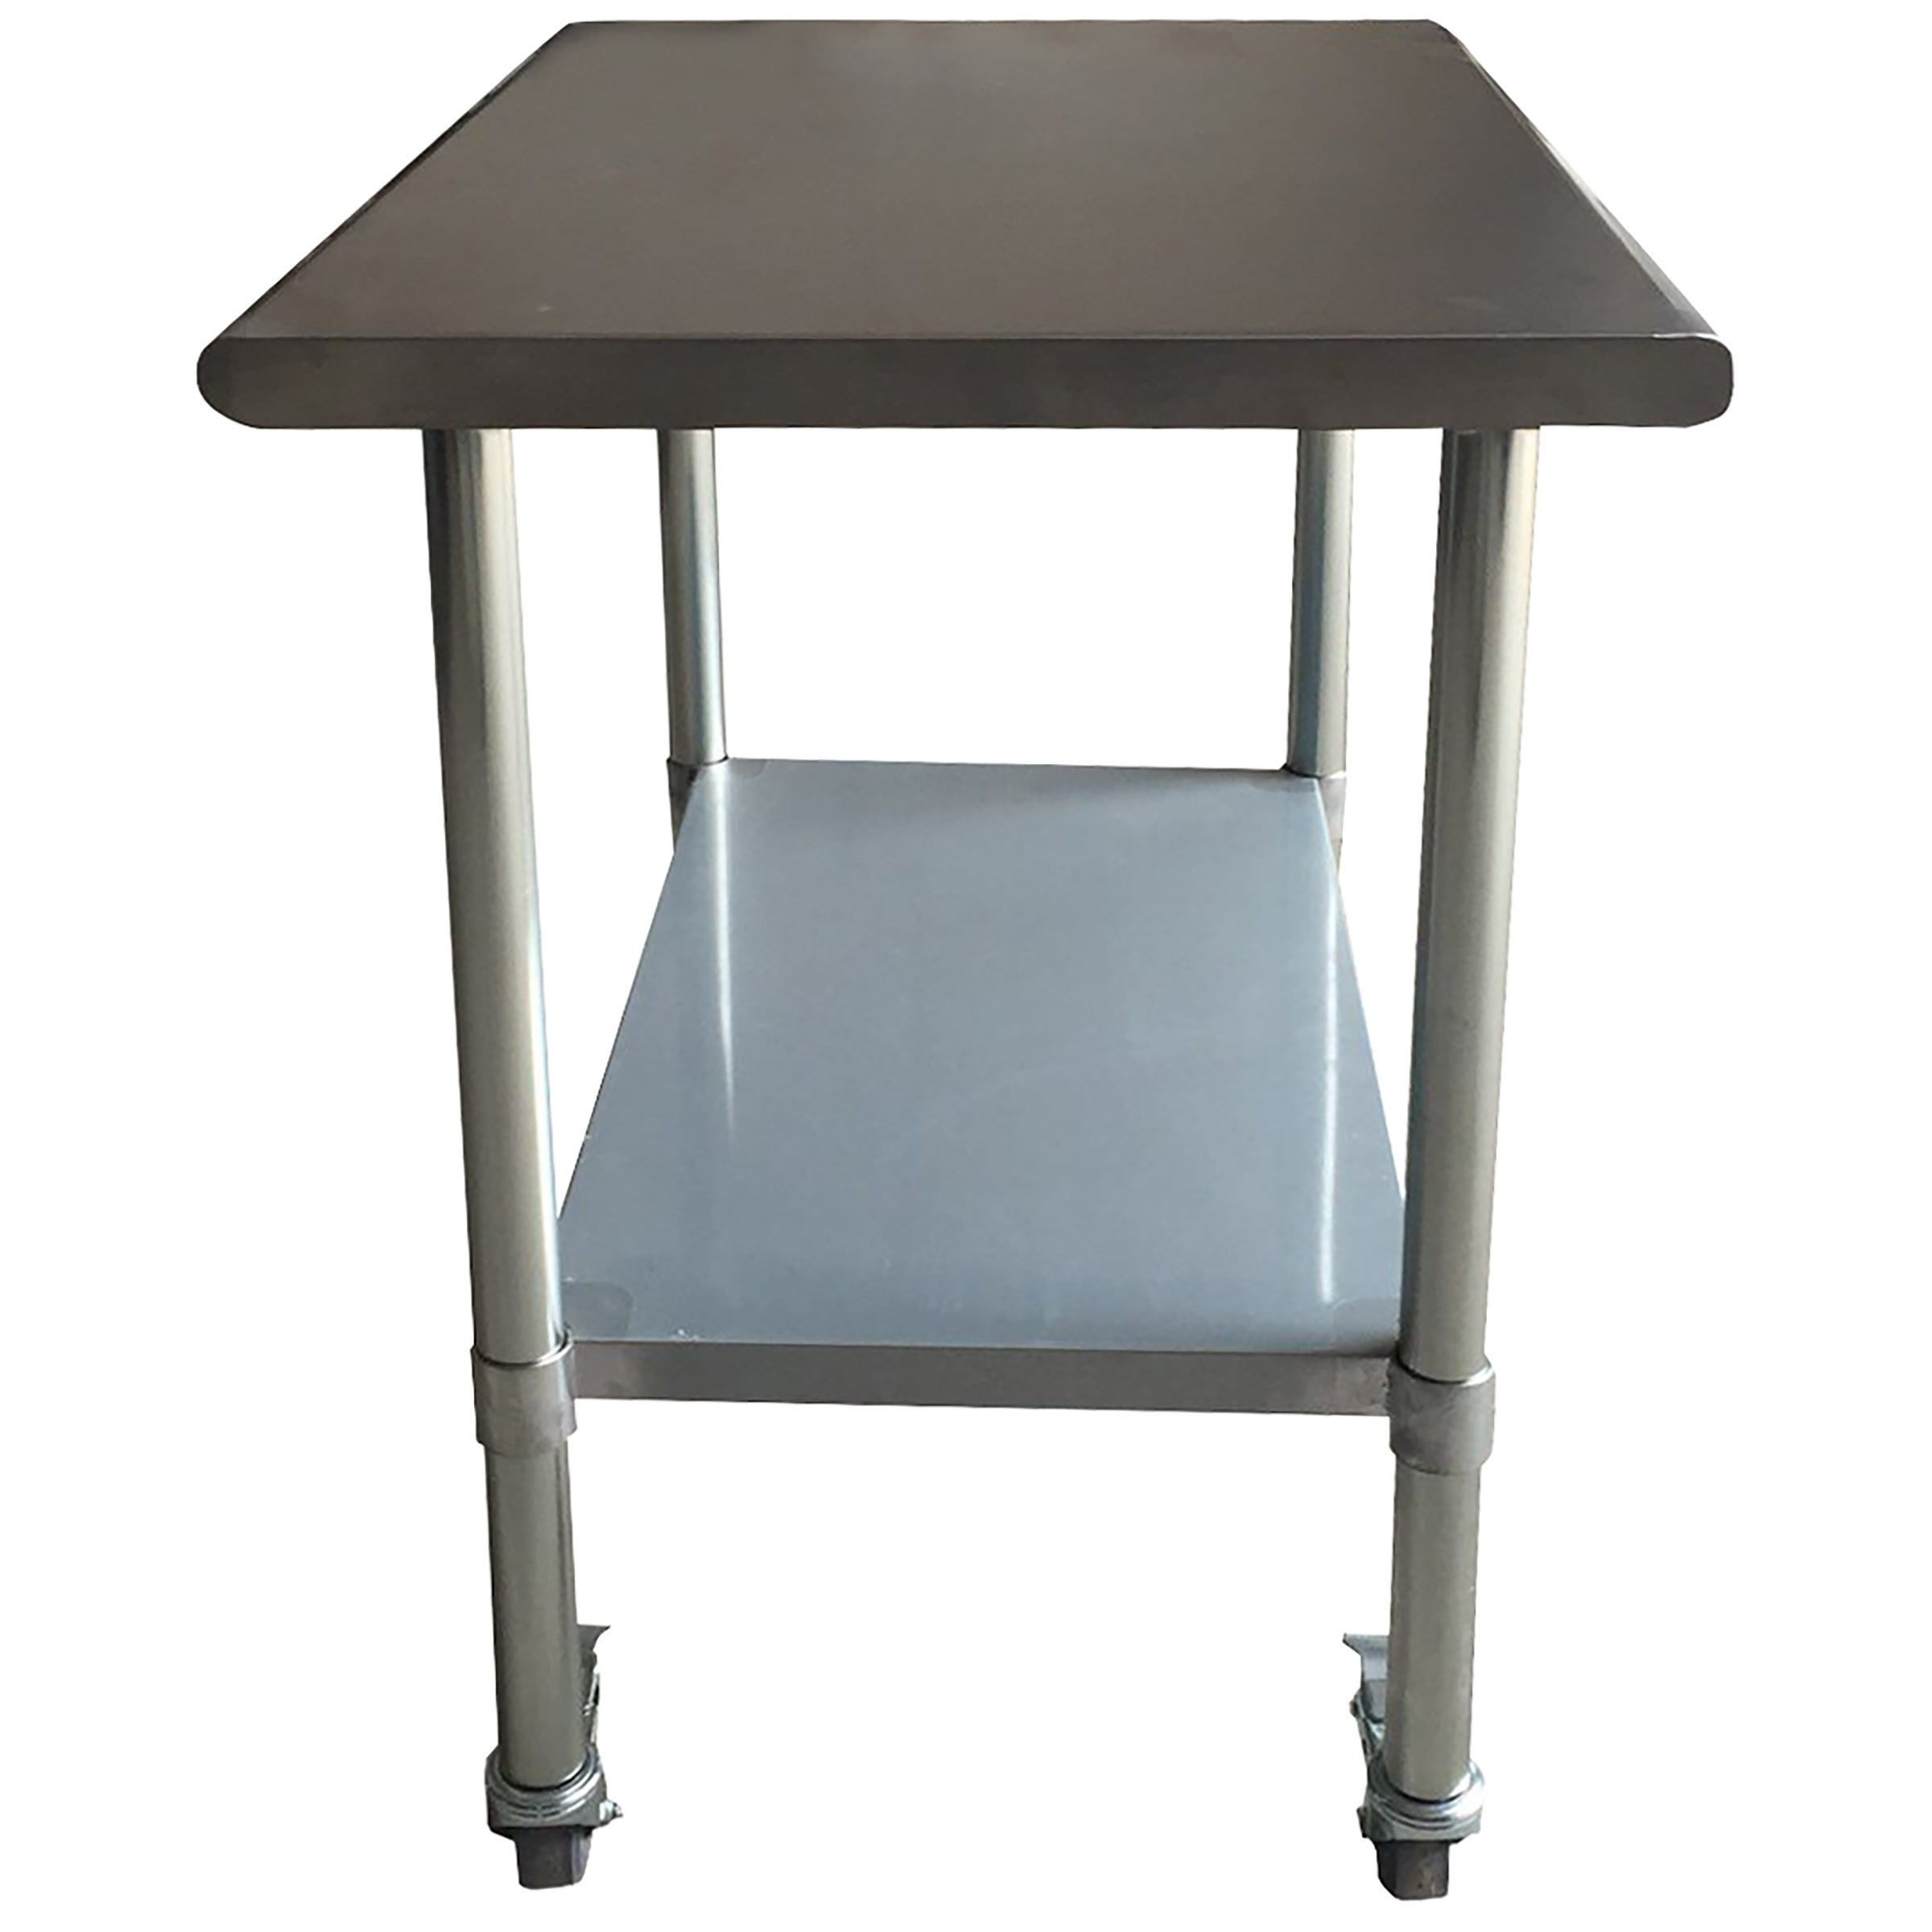 Sportsman Series Stainless Steel Work Table With Casters X - Stainless steel work table on casters